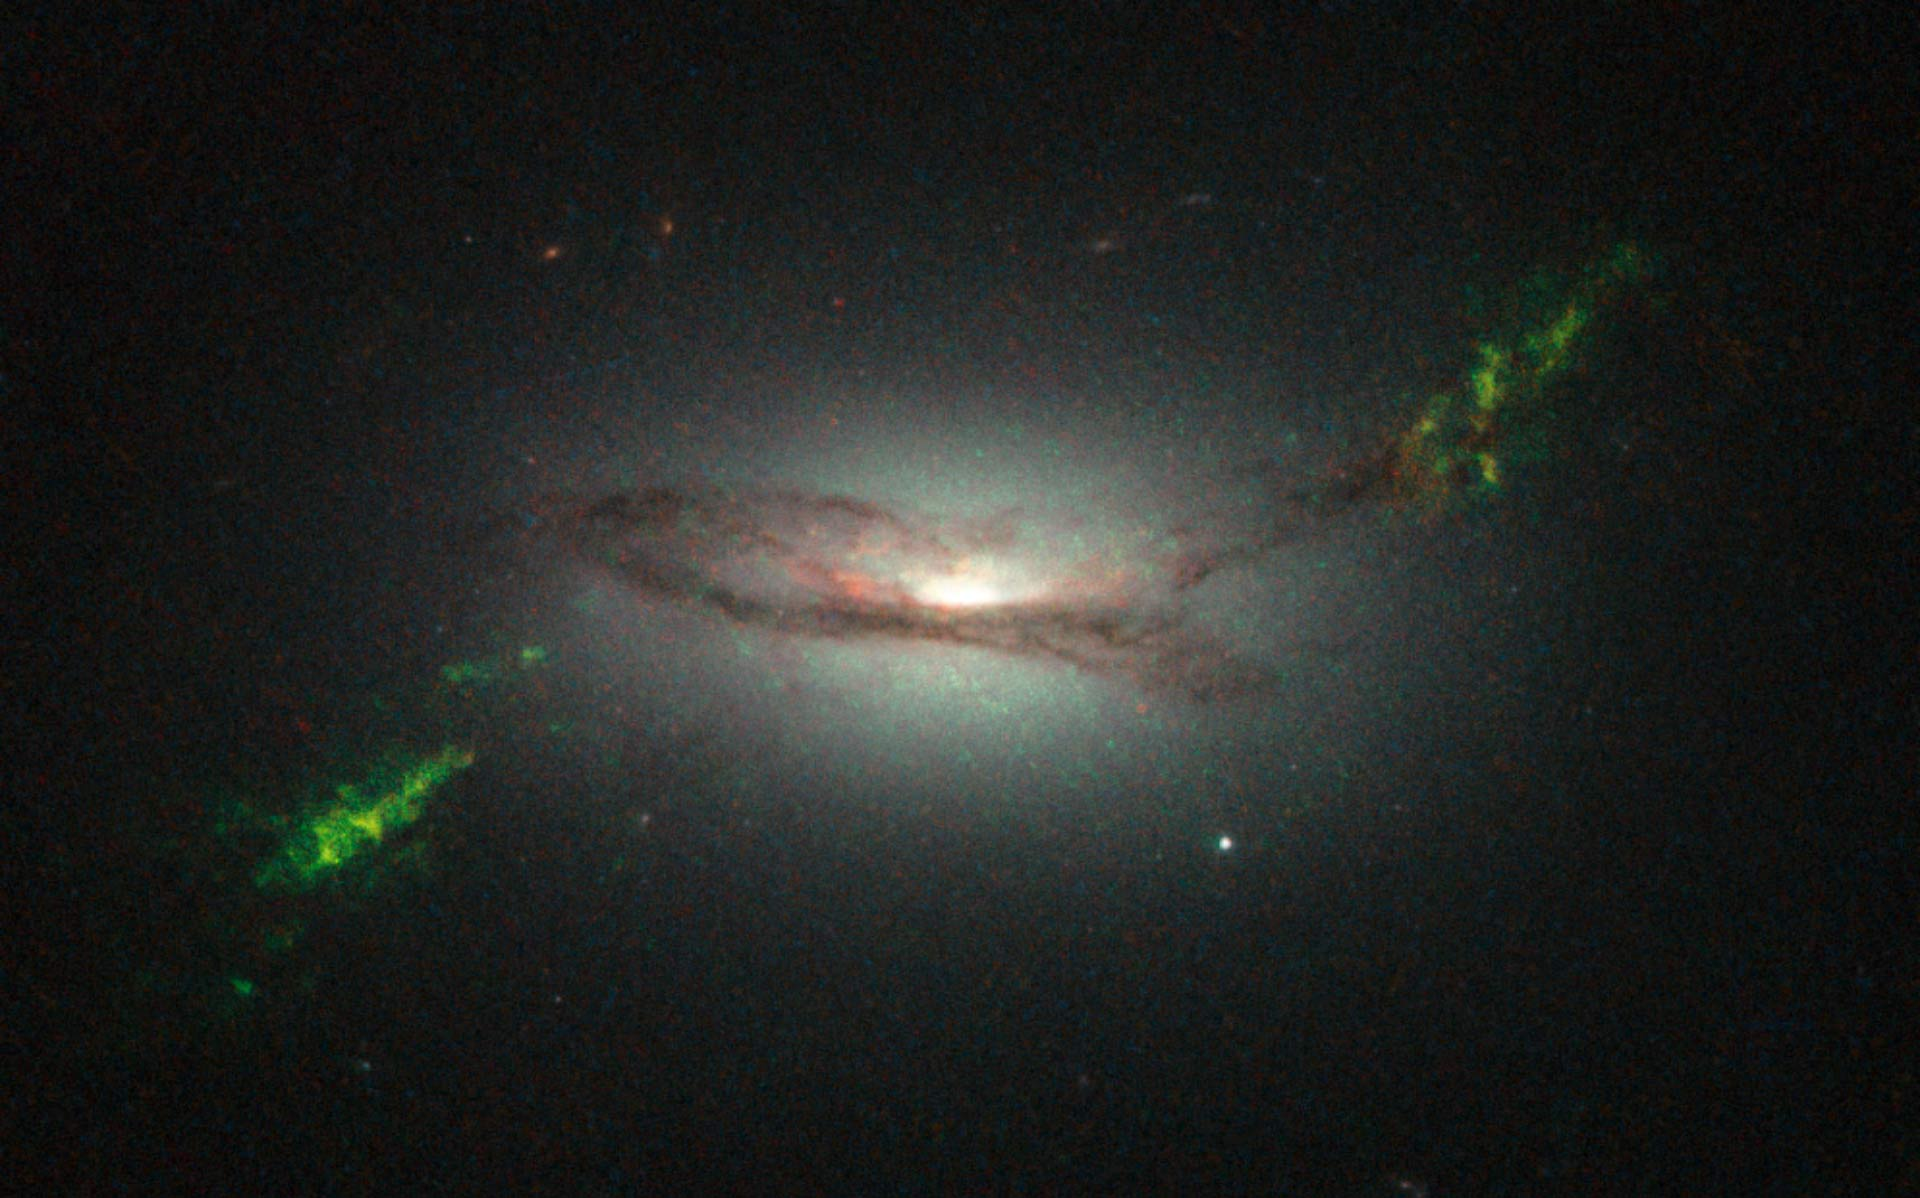 Quasar ghosts spotted in deep space